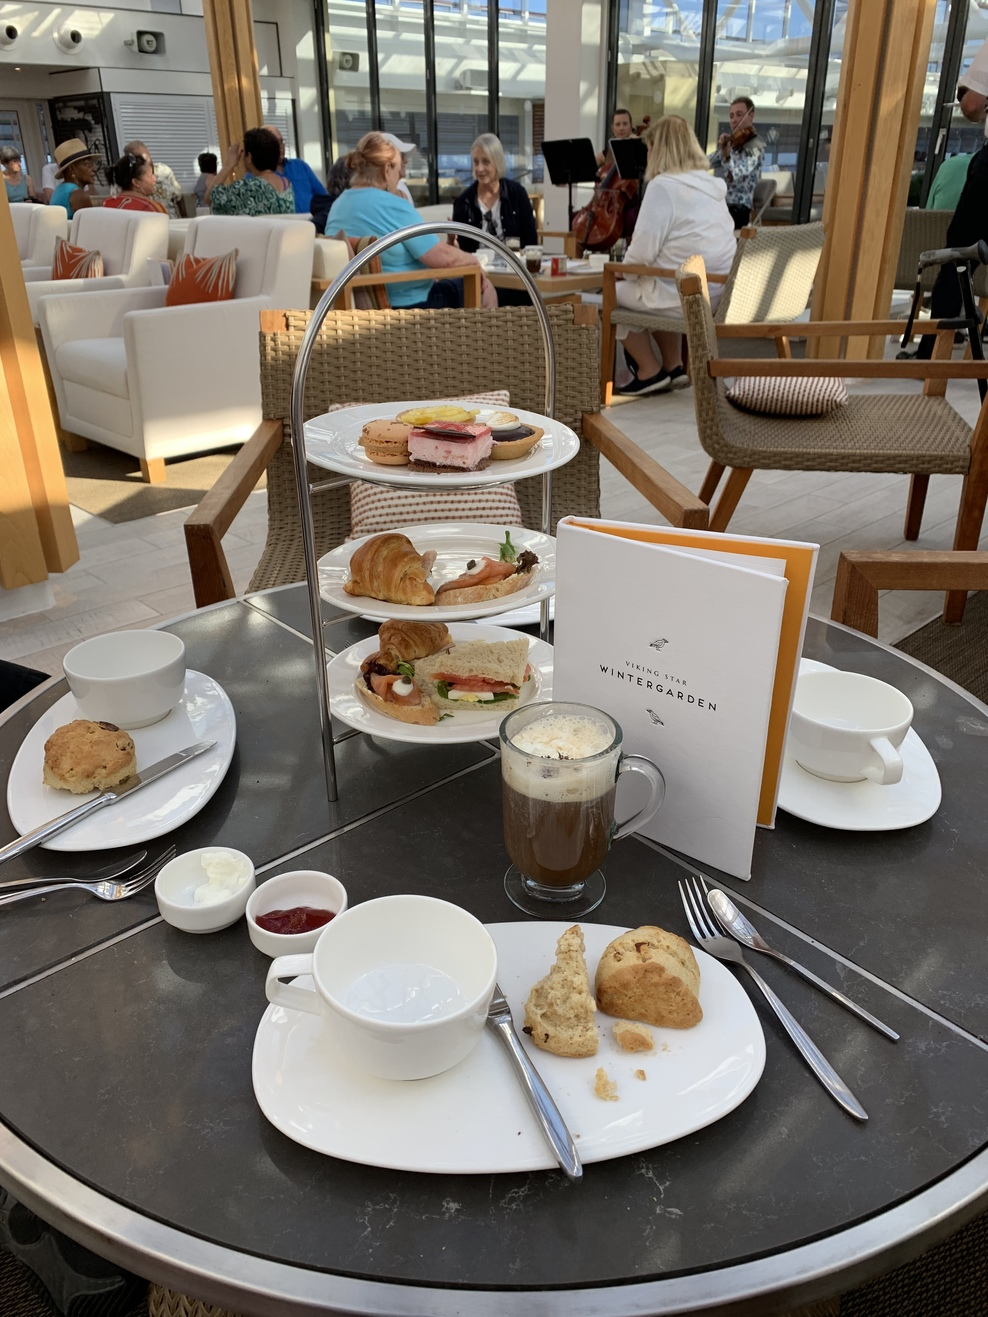 High tea in Wintergarden